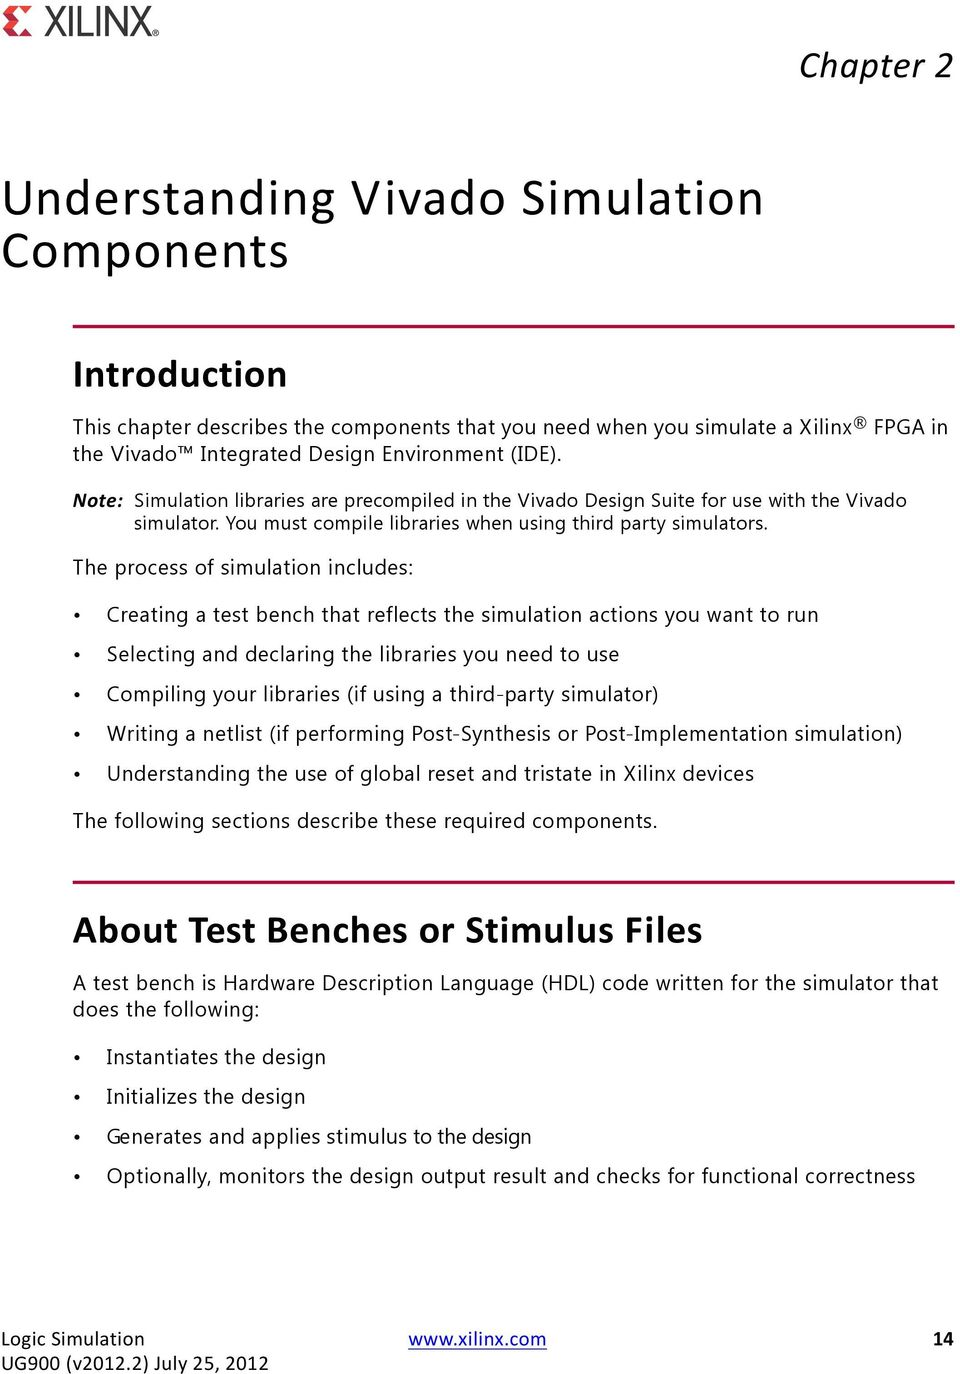 The process of simulation includes: Creating a test bench that reflects the simulation actions you want to run Selecting and declaring the libraries you need to use Compiling your libraries (if using